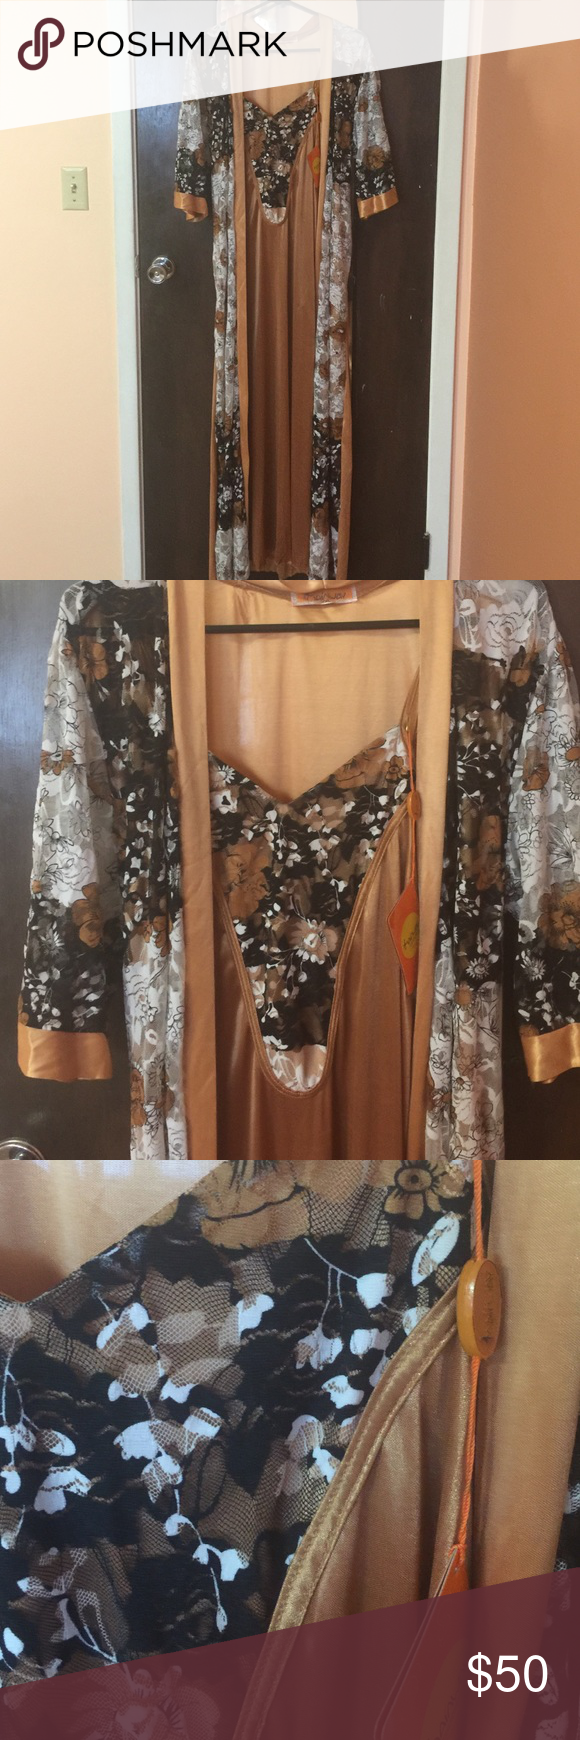 Weeding sleeping gown / robe Brand new 3 pieces with tag it say XXL but I think it's for size L Intimates & Sleepwear Robes